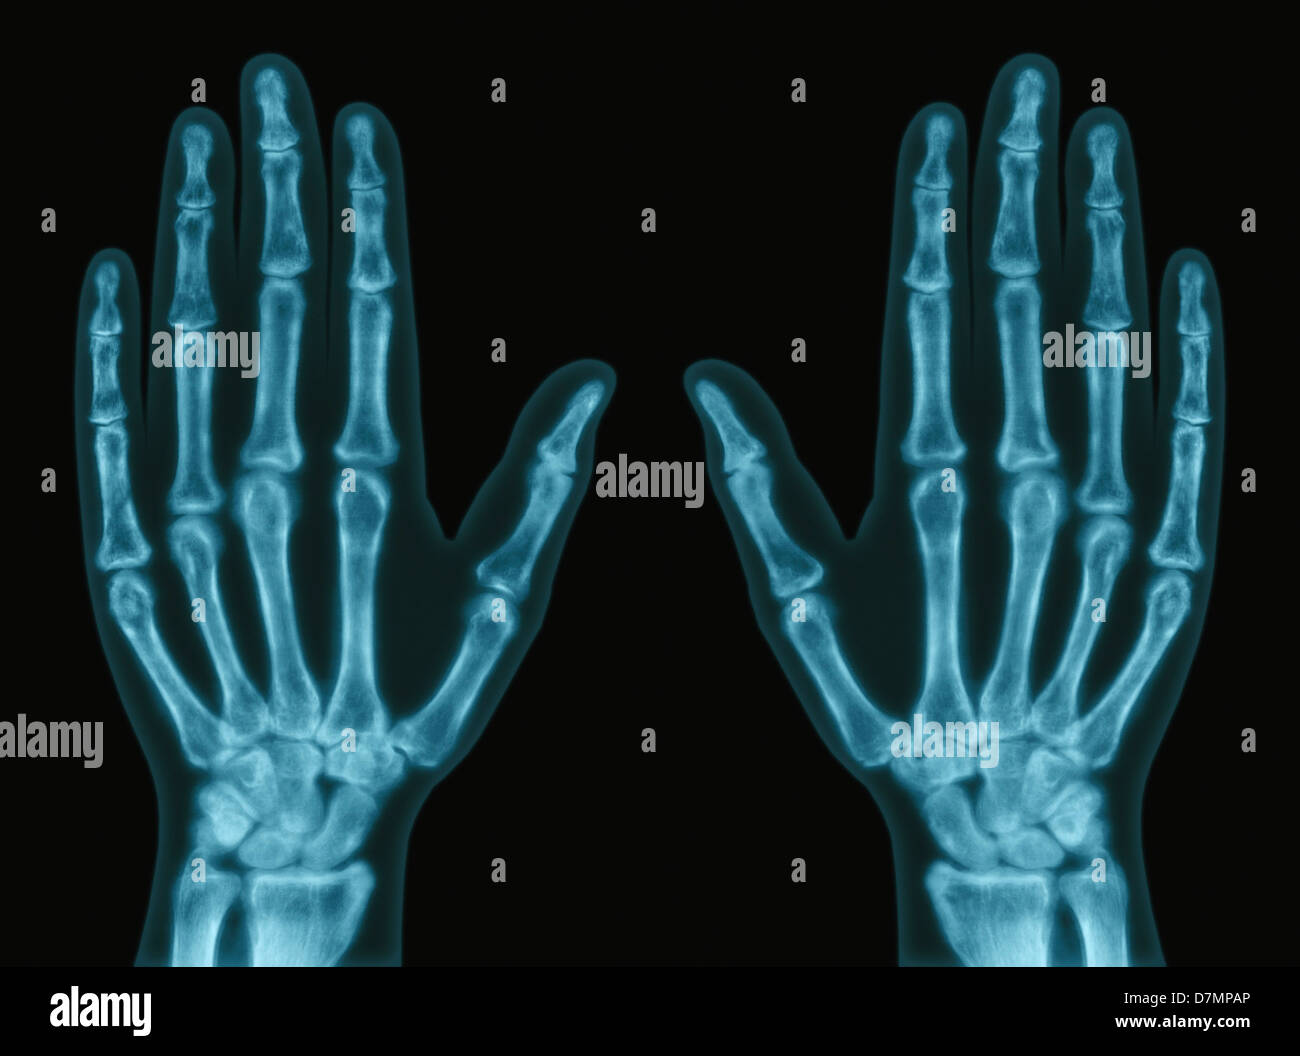 Hands, X-ray - Stock Image